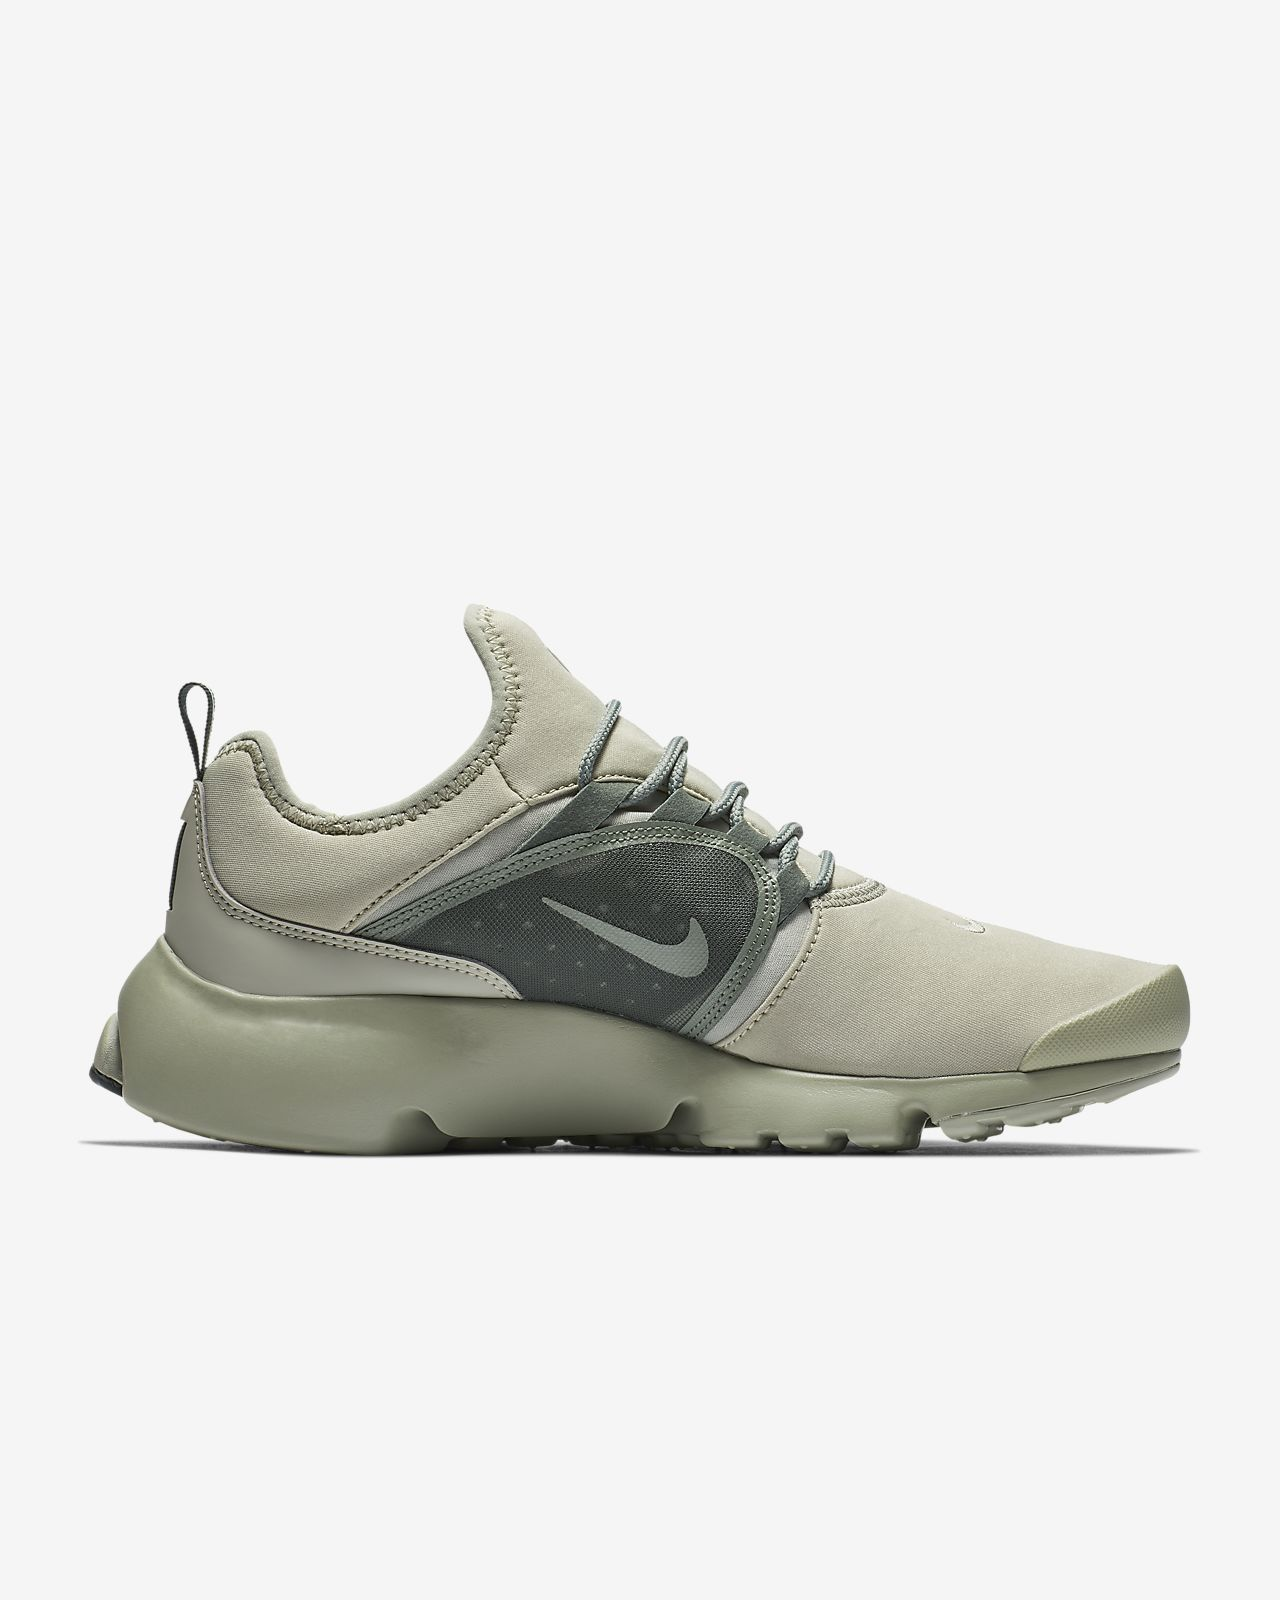 World Chaussure Fly Nike Presto HommeFr Pour jUMGSzVLqp